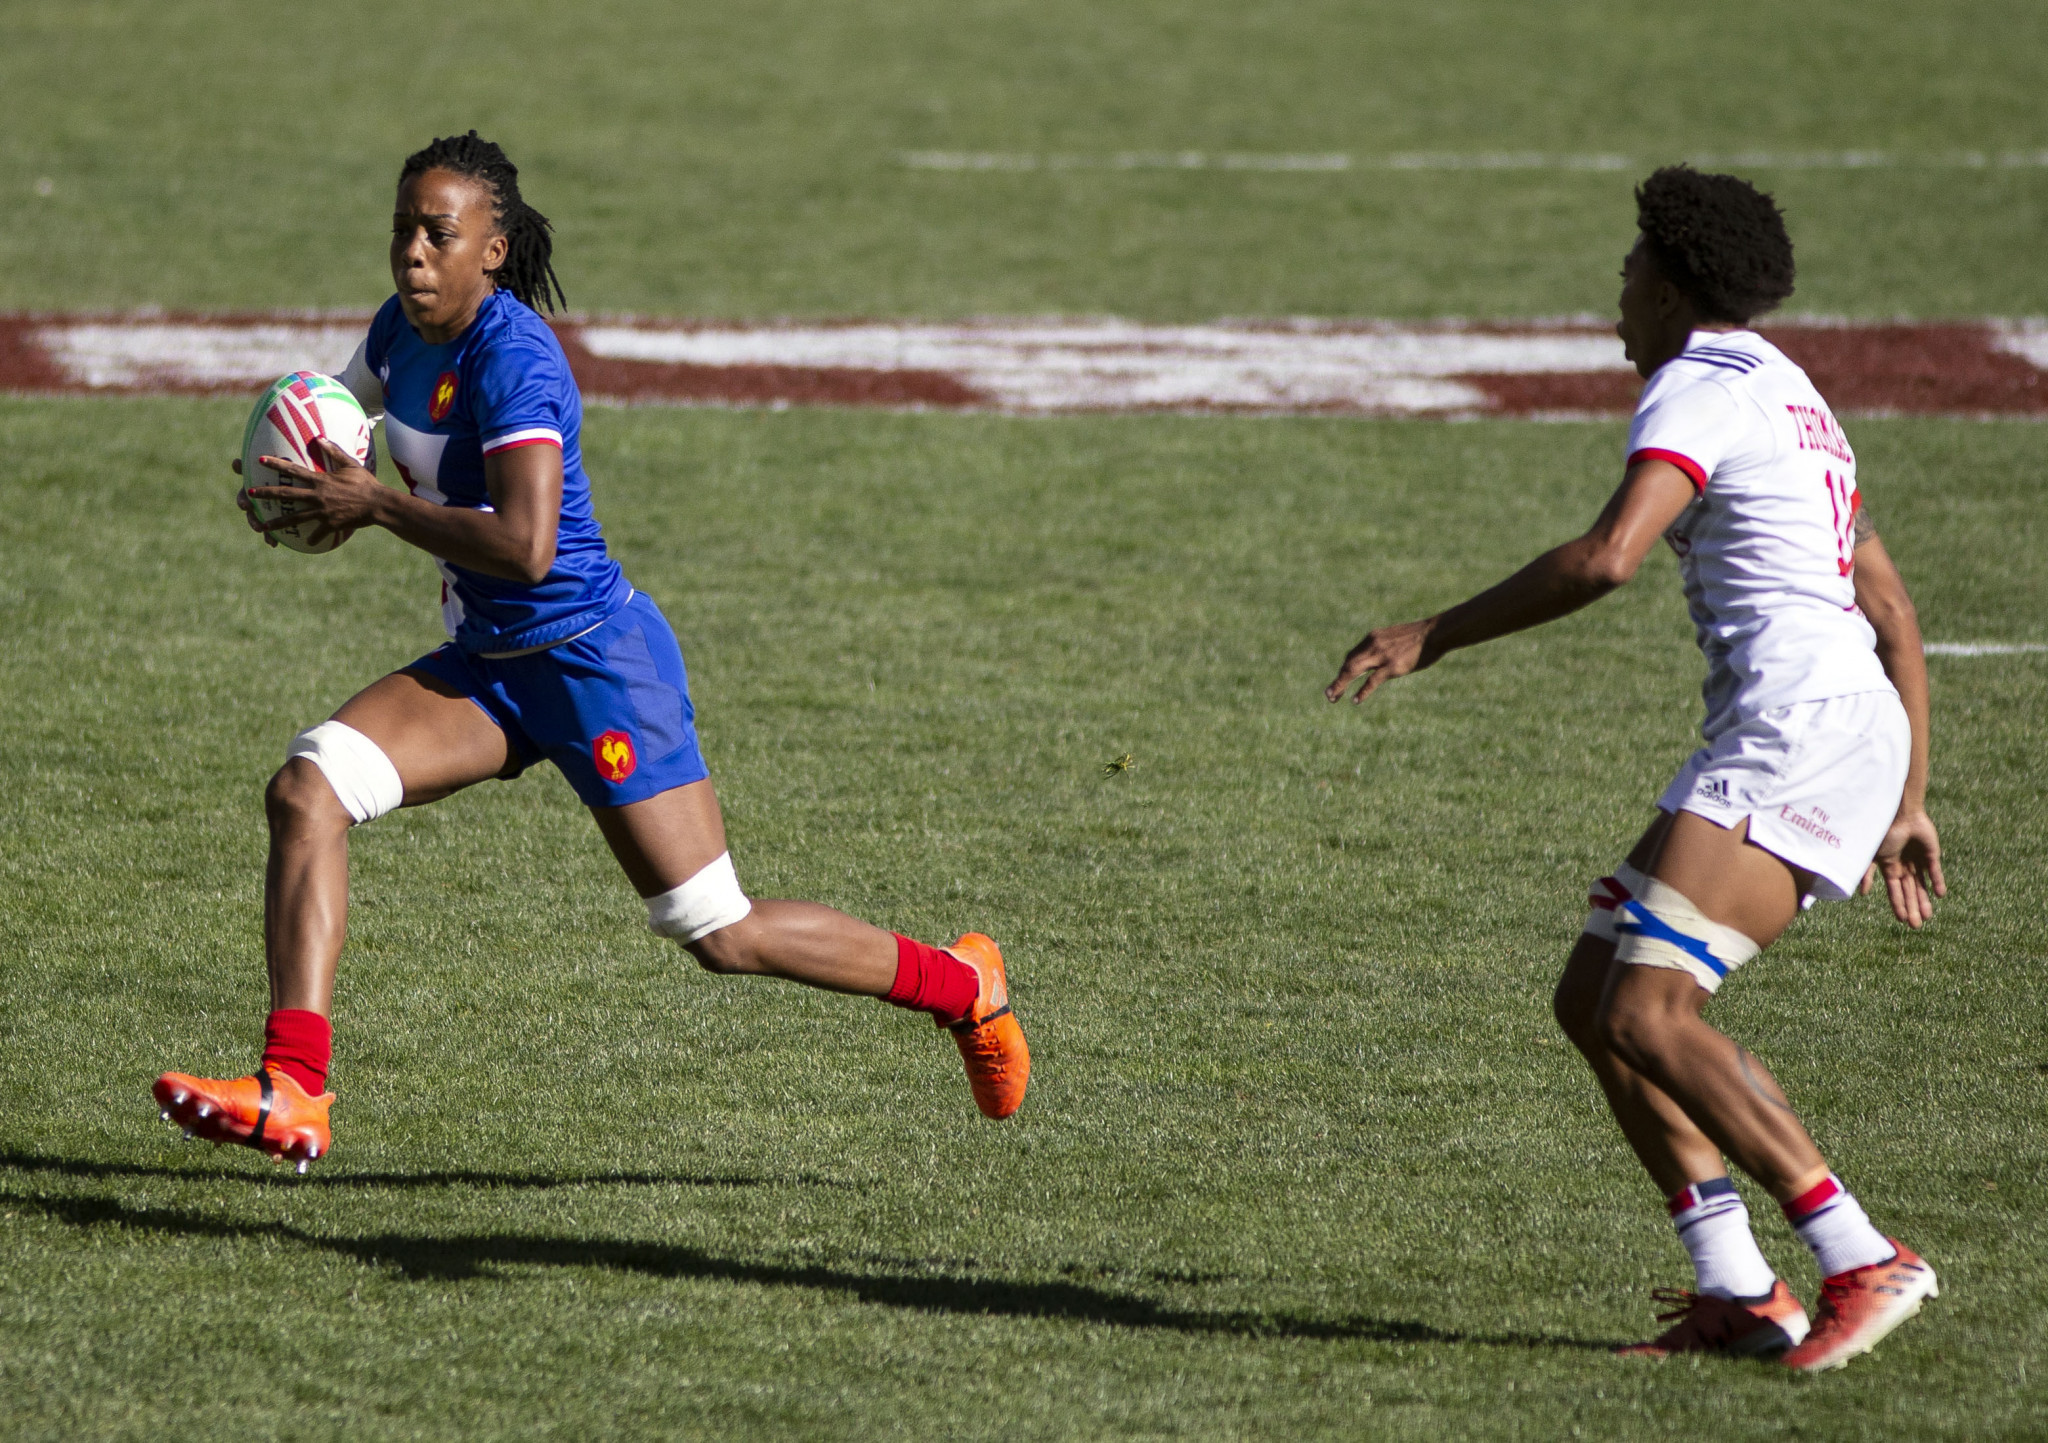 France finished as the silver medallists in the Rugby World Cup Sevens women's competition ©Getty Images